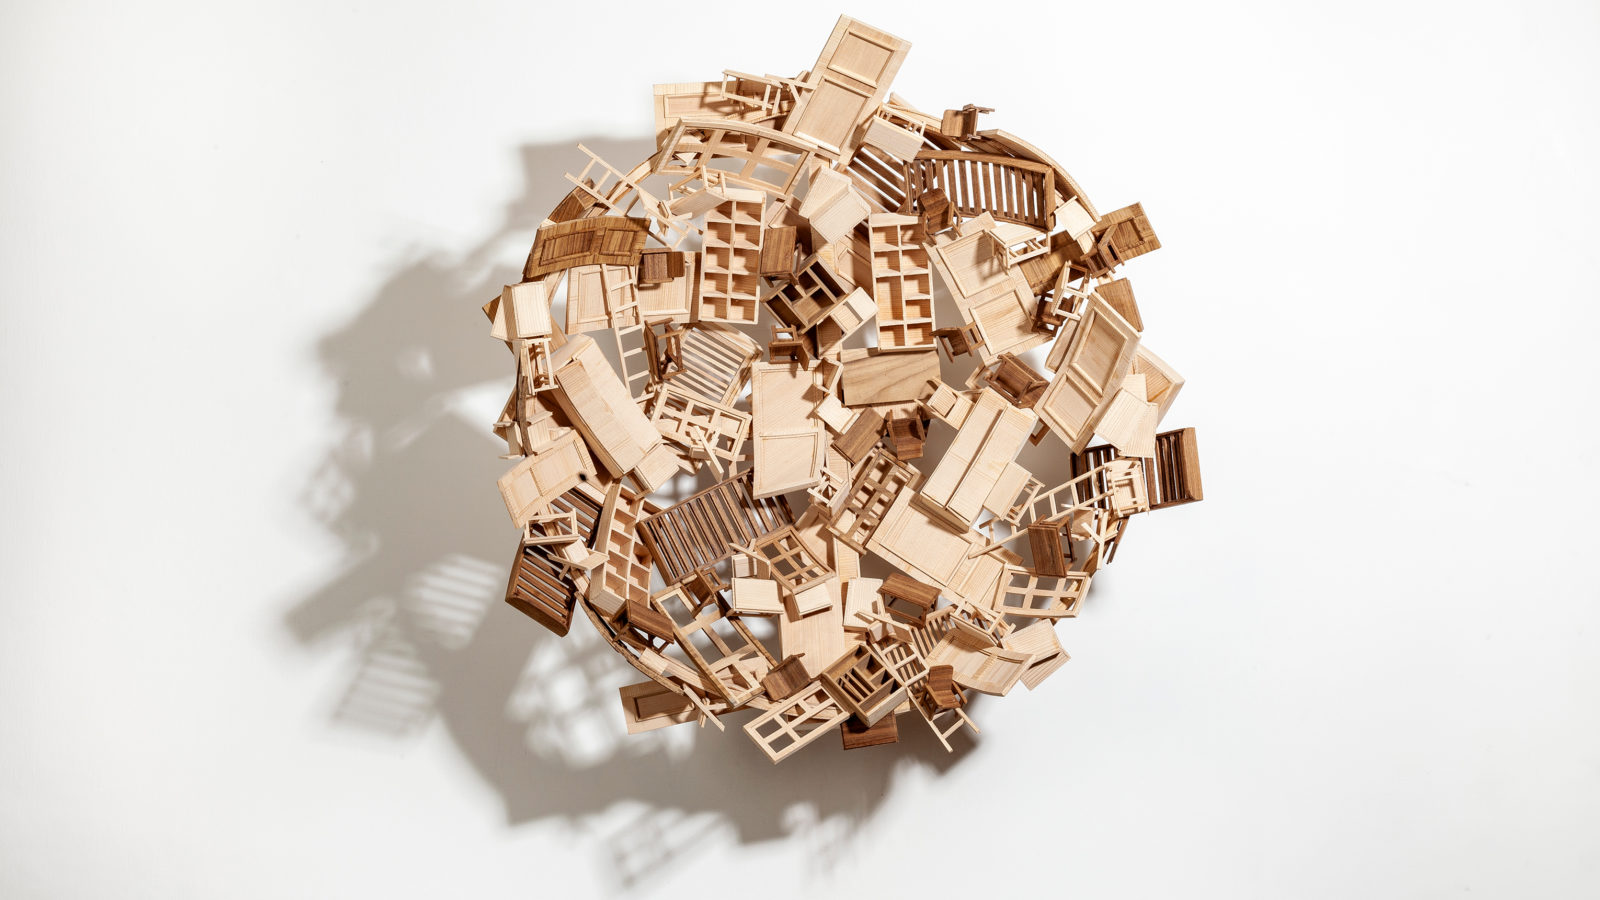 Martand Khosla. No Reason to Care, 2020. Wood and steel. Courtesy of Nature Morte